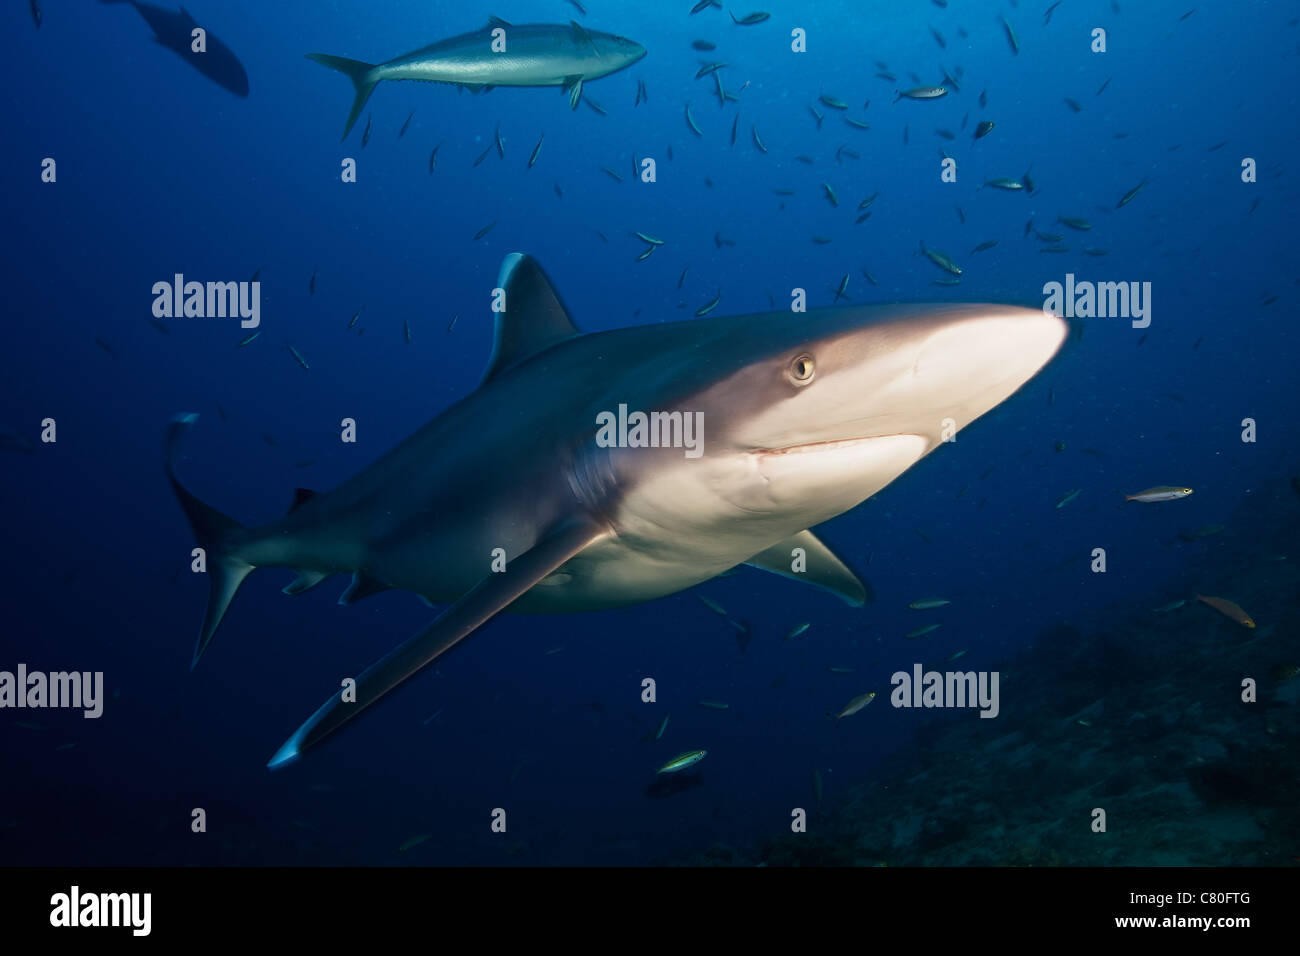 A large silvertip shark comes in close to look at the photographer, Fiji. - Stock Image